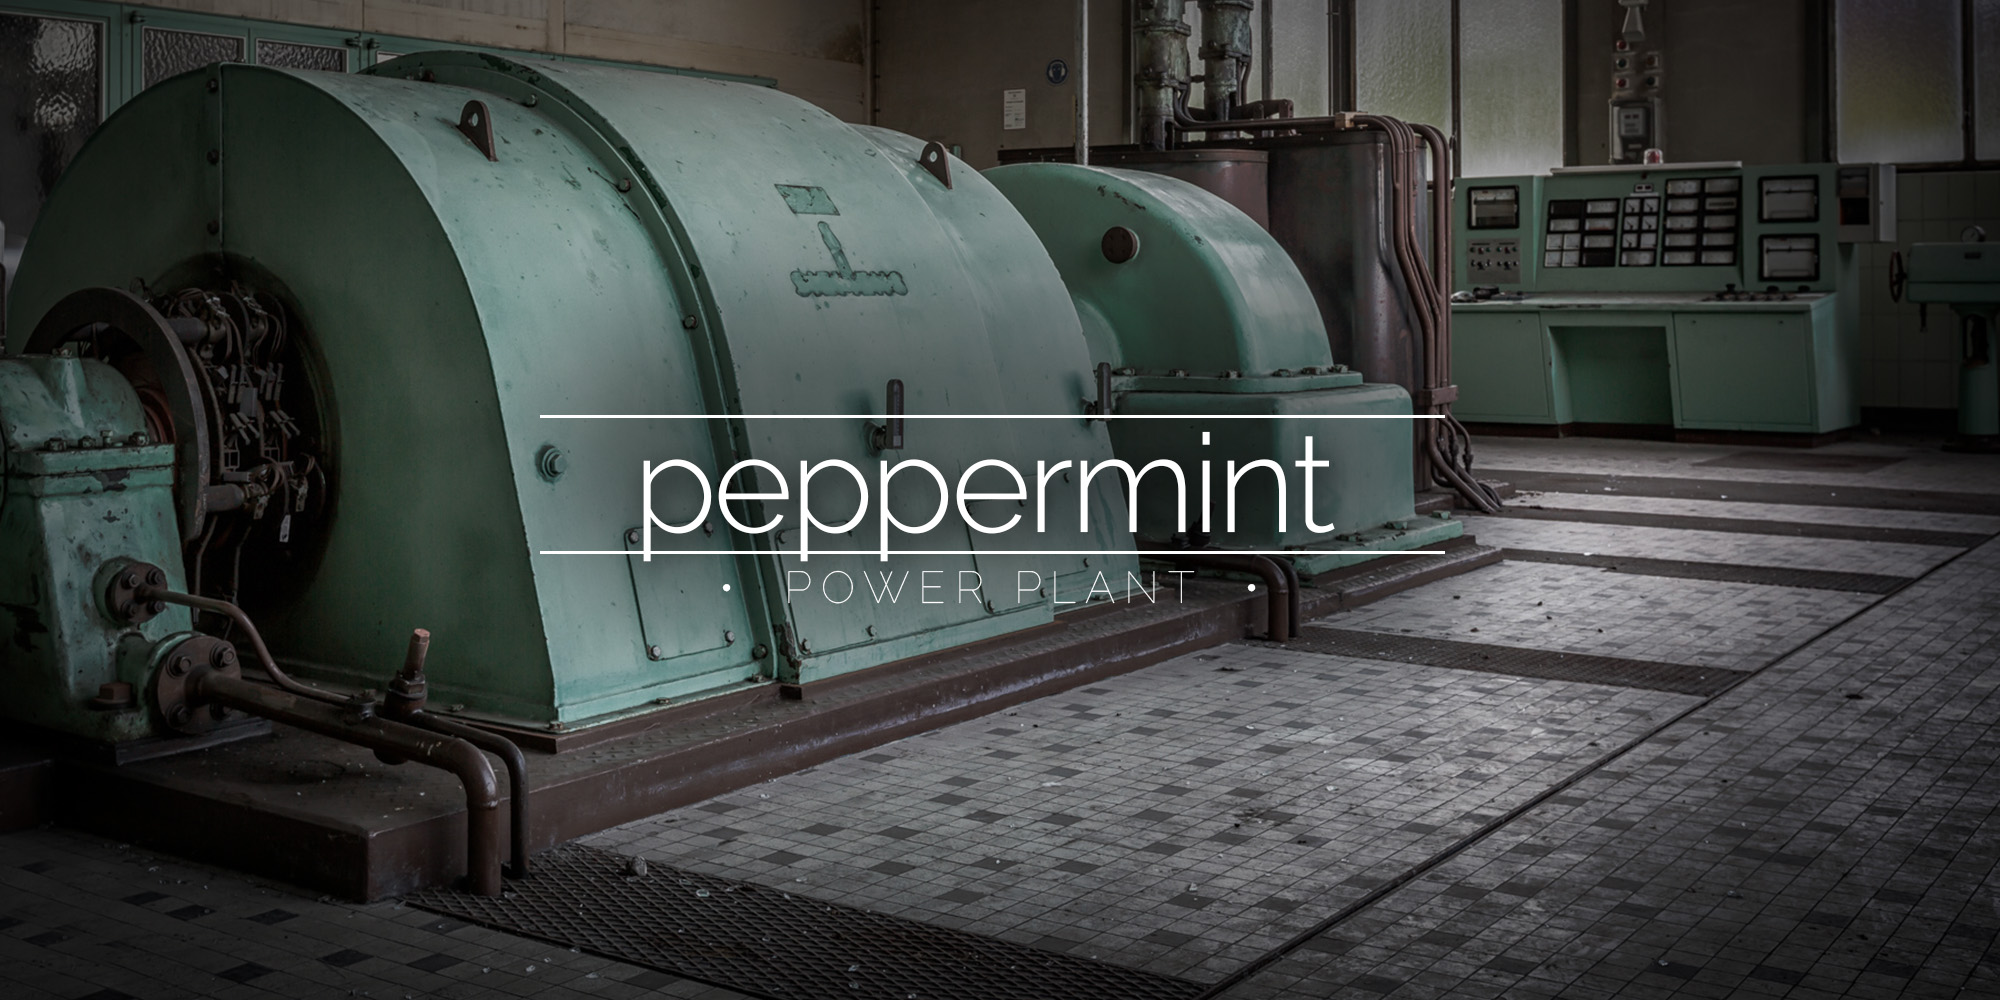 Peppermint Power Plant, Germany